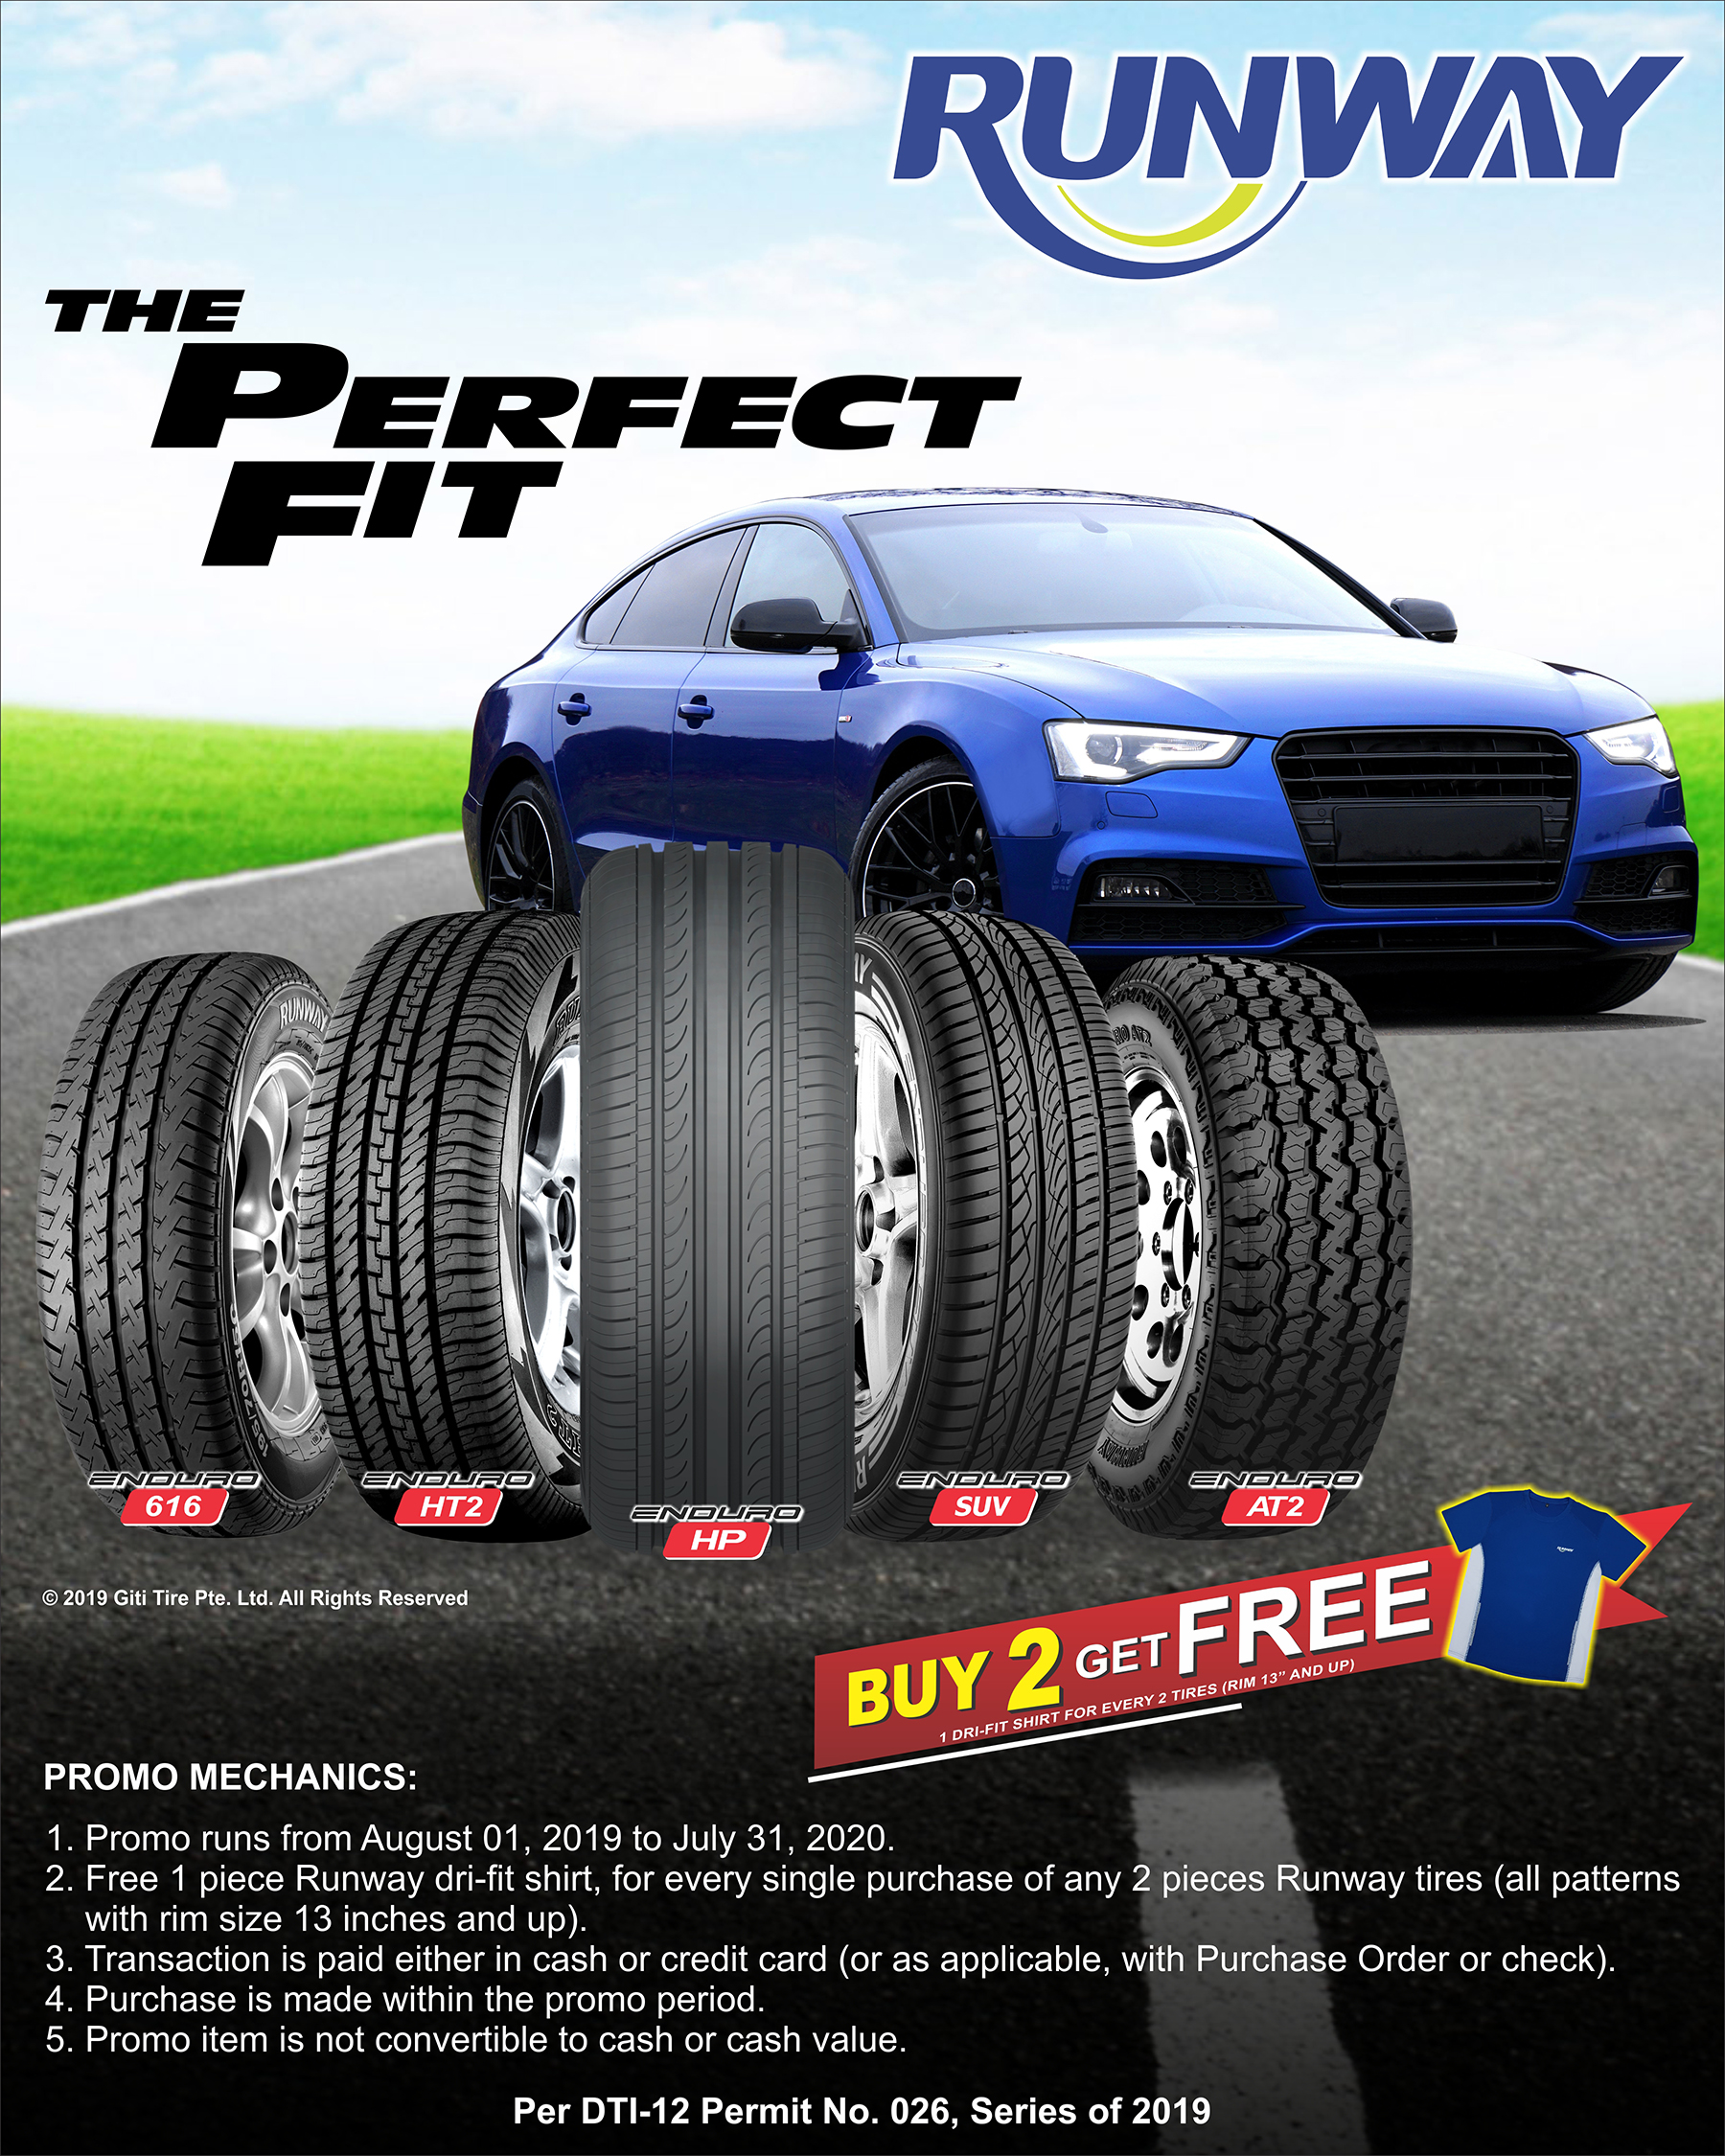 PERFECT FIT PROMO